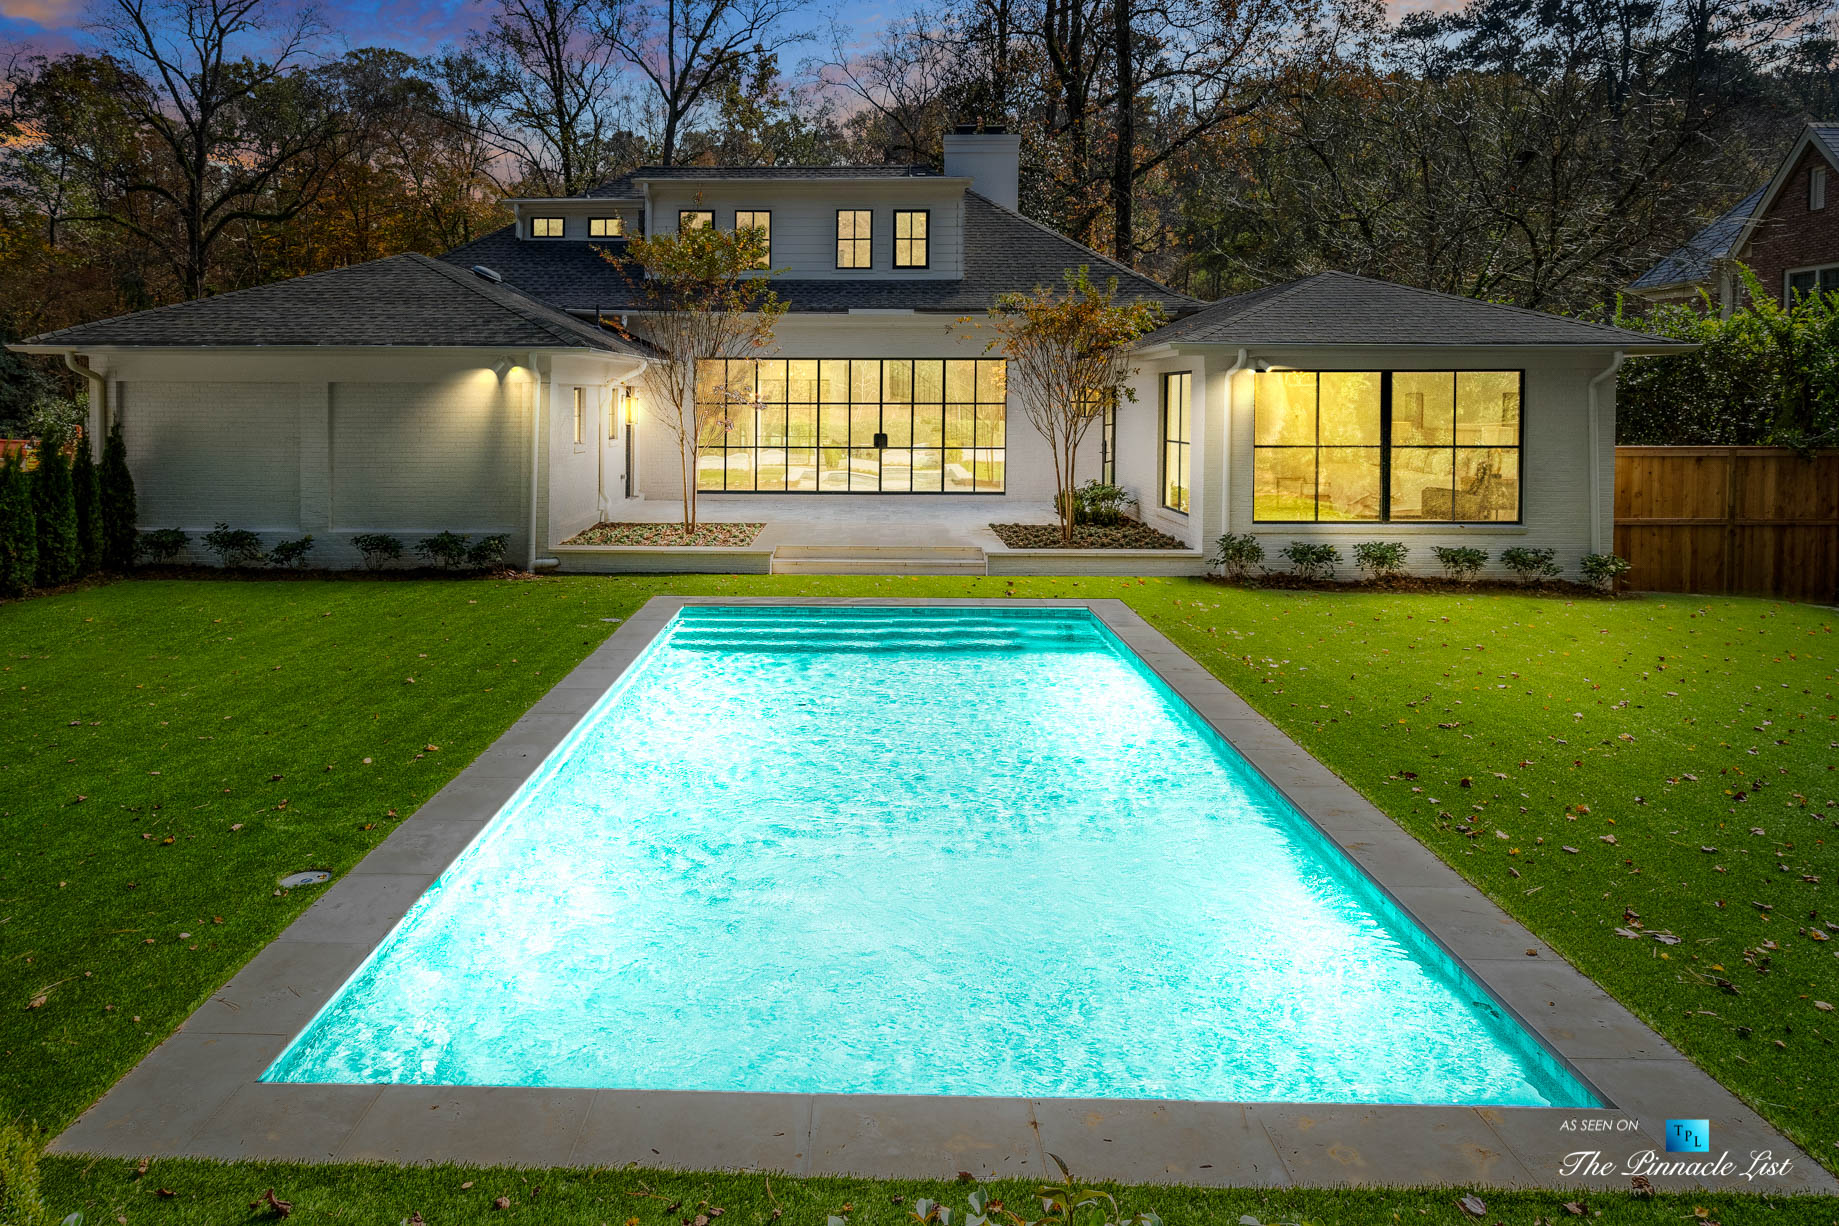 447 Valley Rd NW, Atlanta, GA, USA - Night Backyard House Pool View - Luxury Real Estate - Tuxedo Park Home